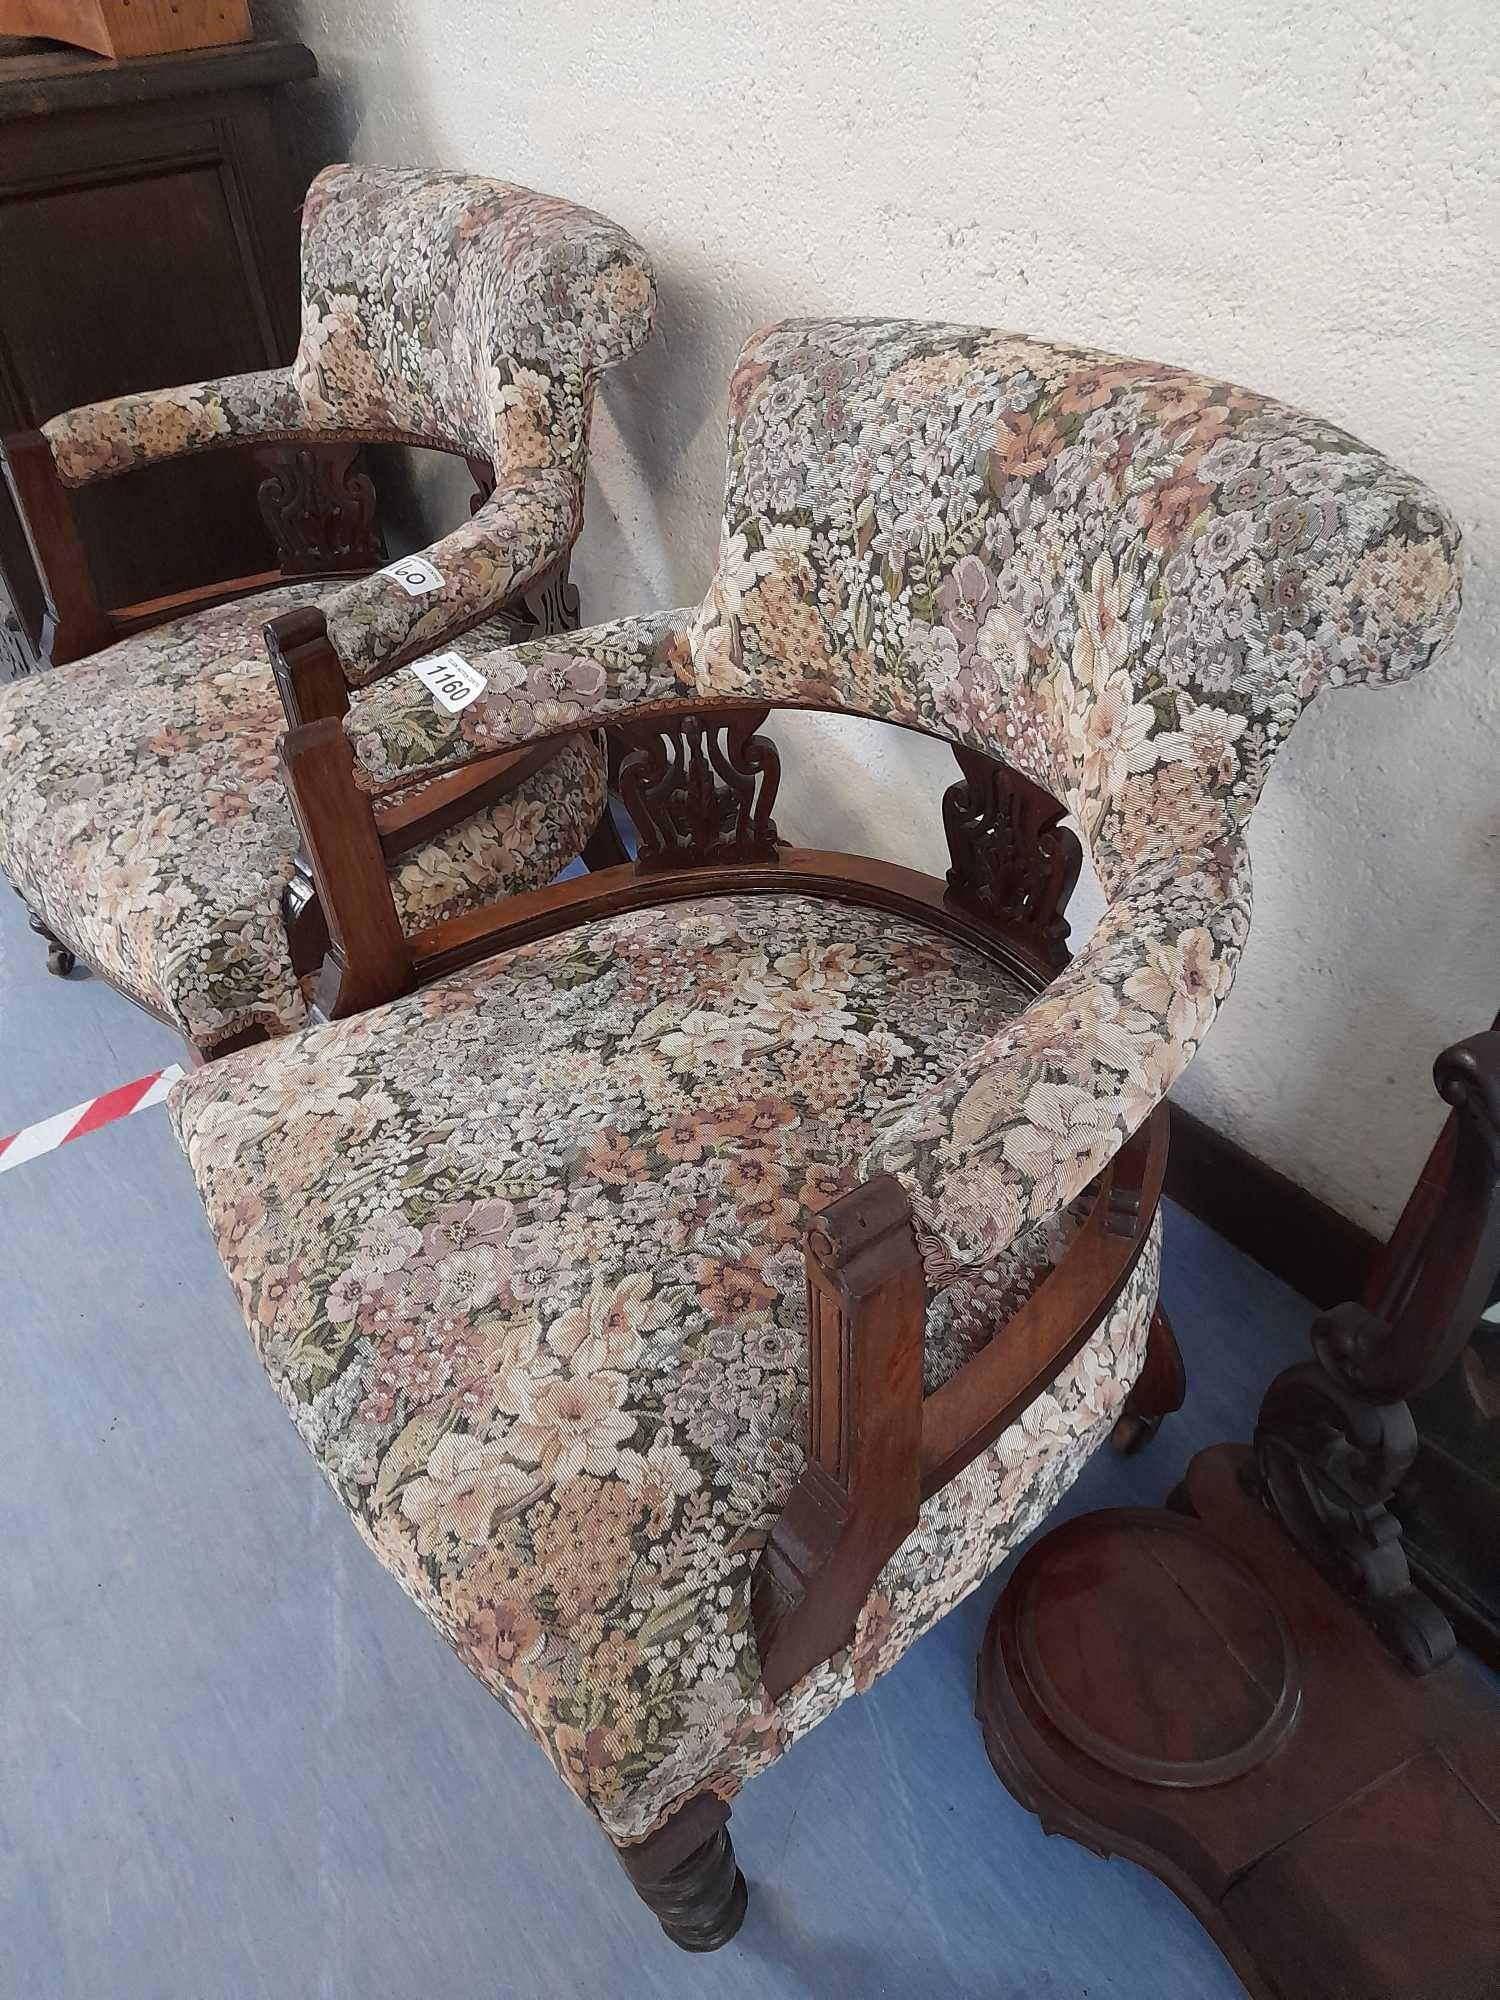 2 TUB CHAIRS - Image 3 of 3